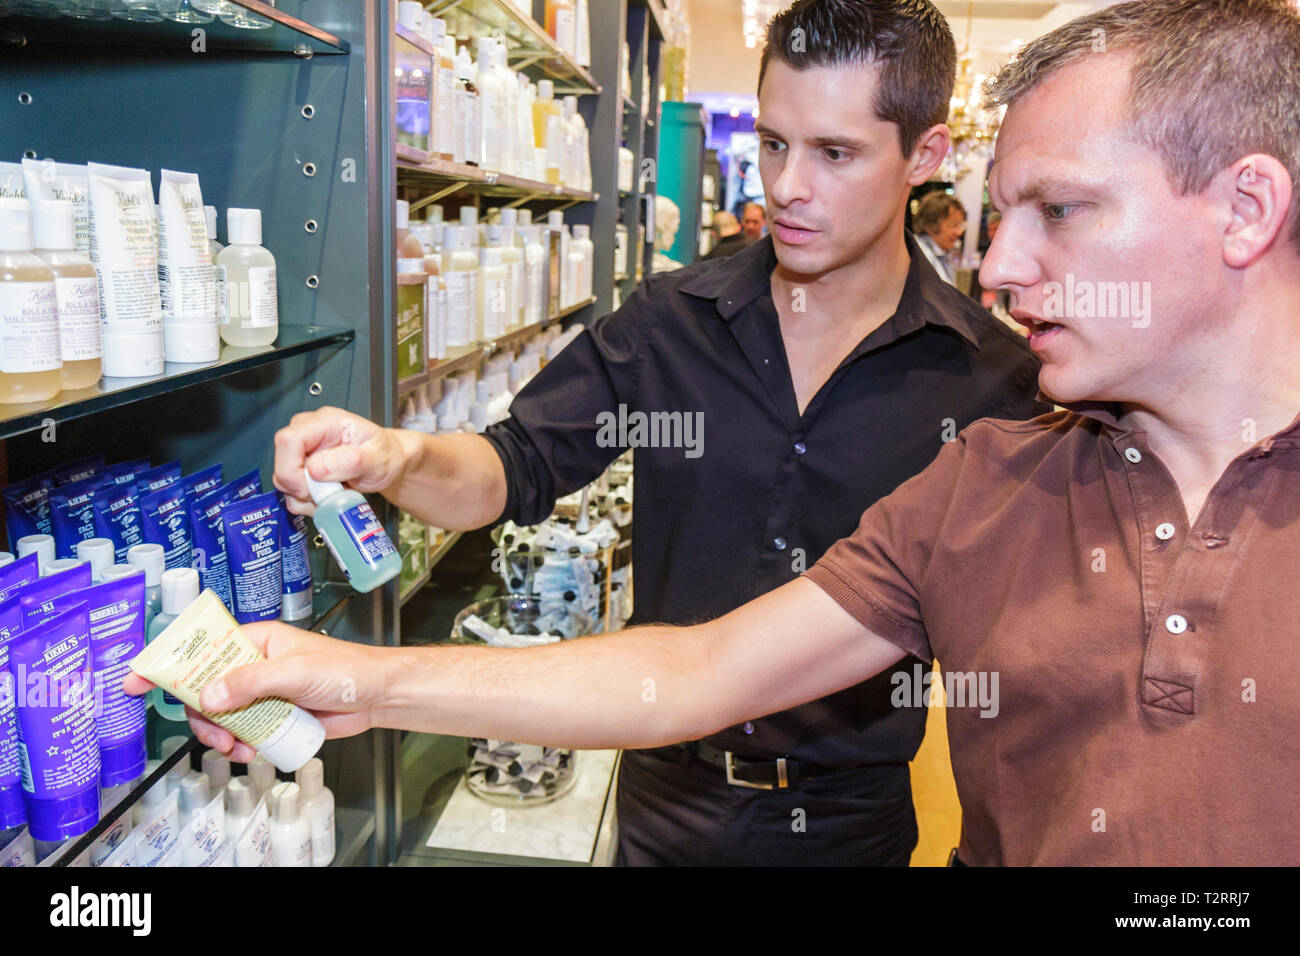 Miami Beach Florida Lincoln Road pedestrian mall shopping Kiehl's Since 1851 Gay Pride Shopping Event bottles packaging apotheca - Stock Image